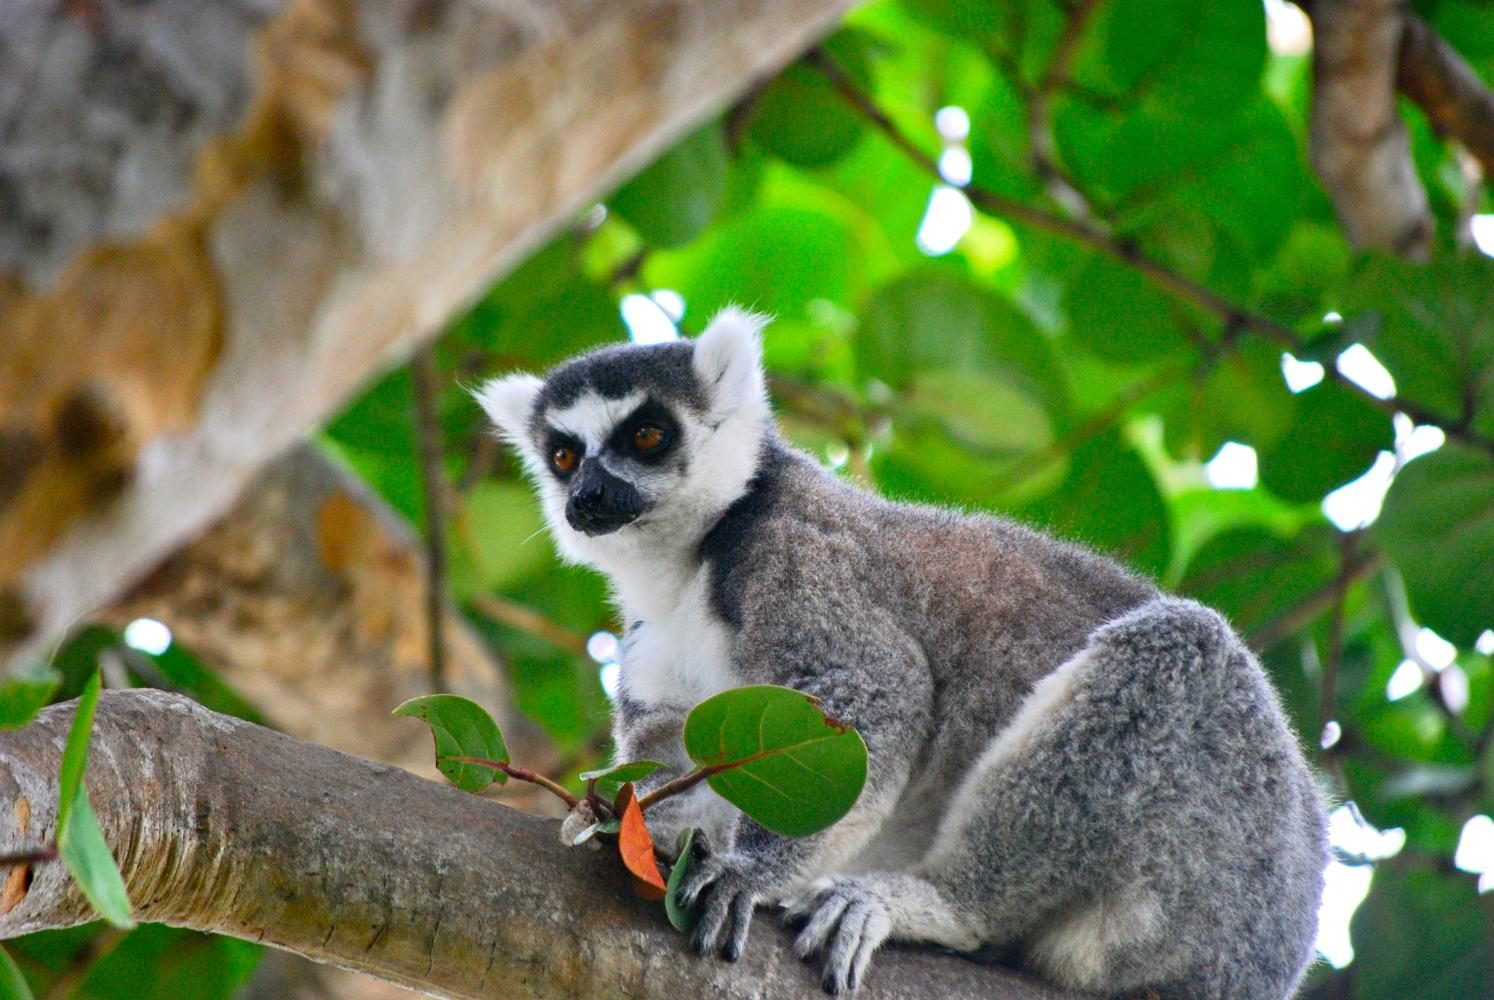 Lemurs+are+among+the+most+protected+and+endangered+primate+species+in+the+world+due+to+their+exclusivity+to+Madagascar.